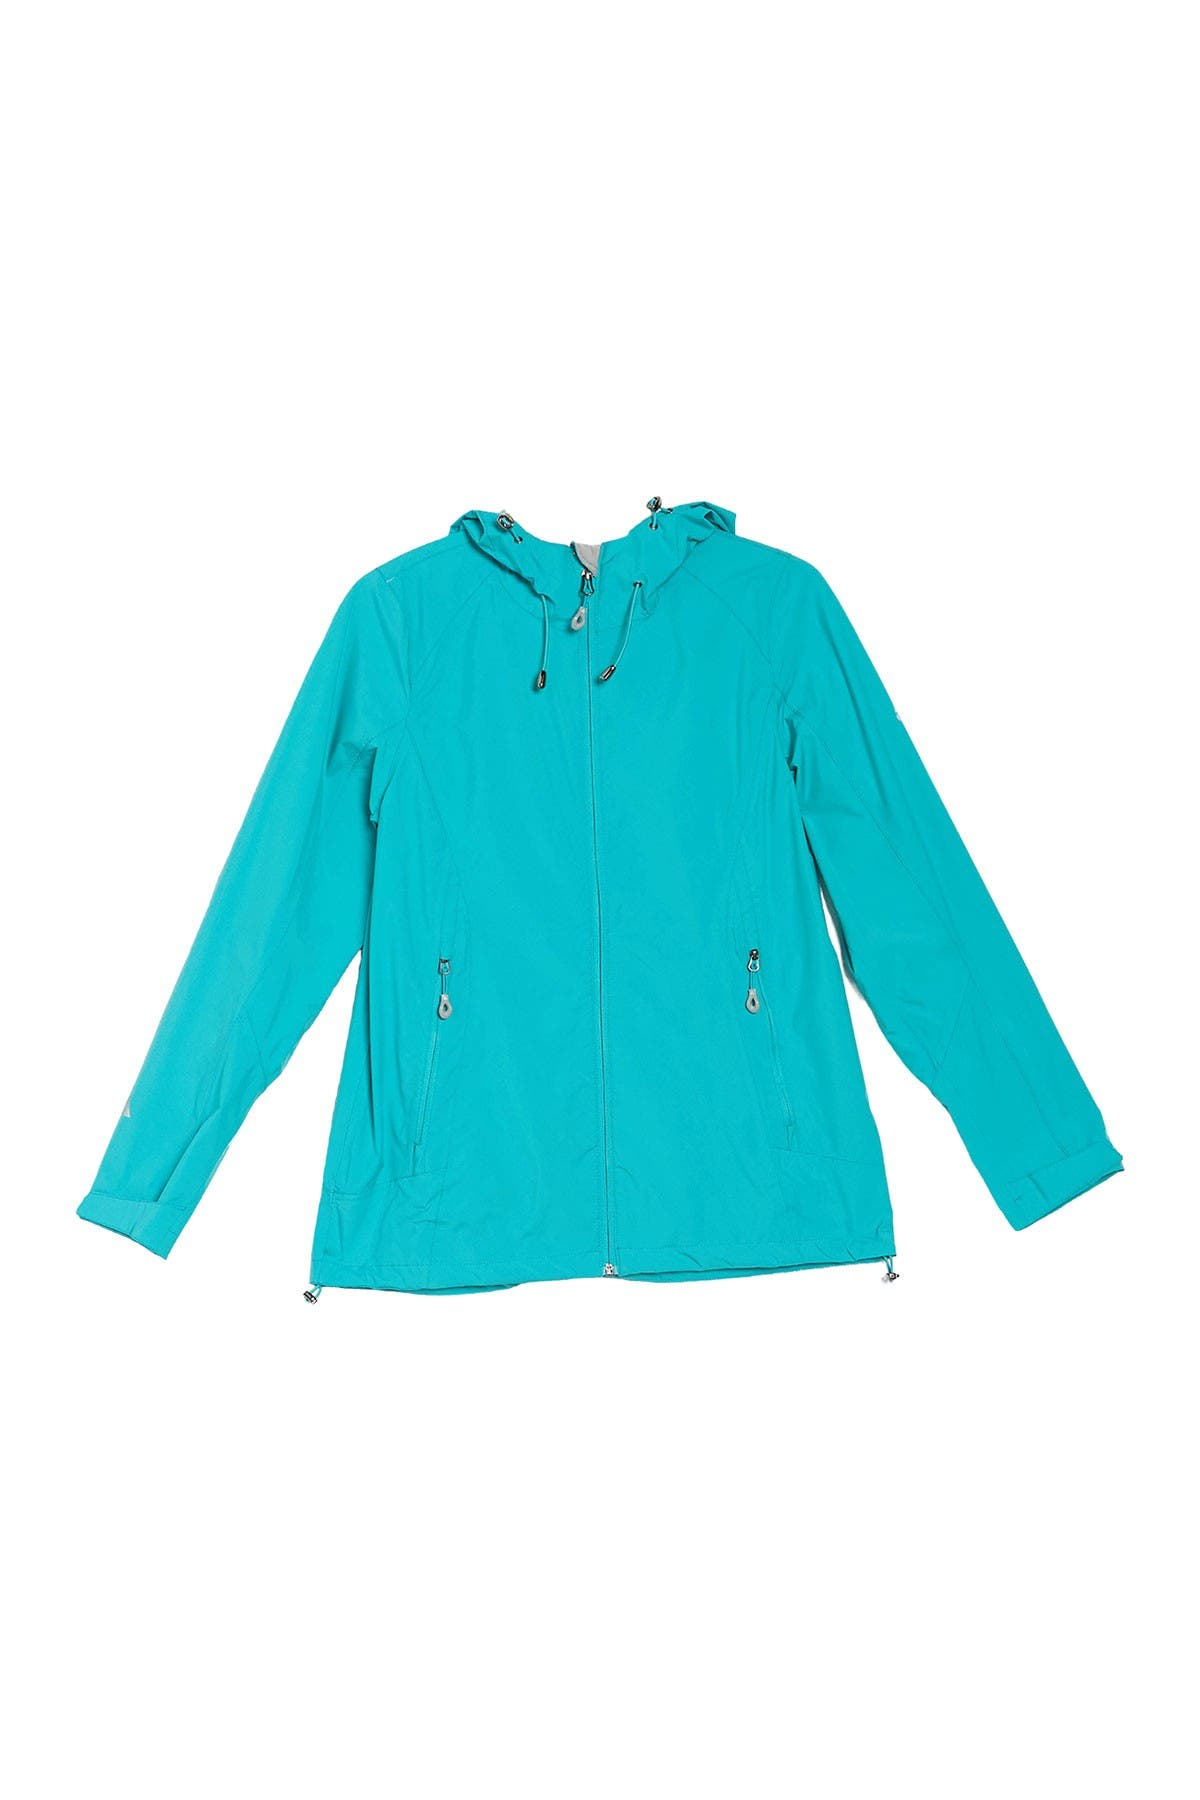 Image of Gerry Iris 2.5 Rain Jacket